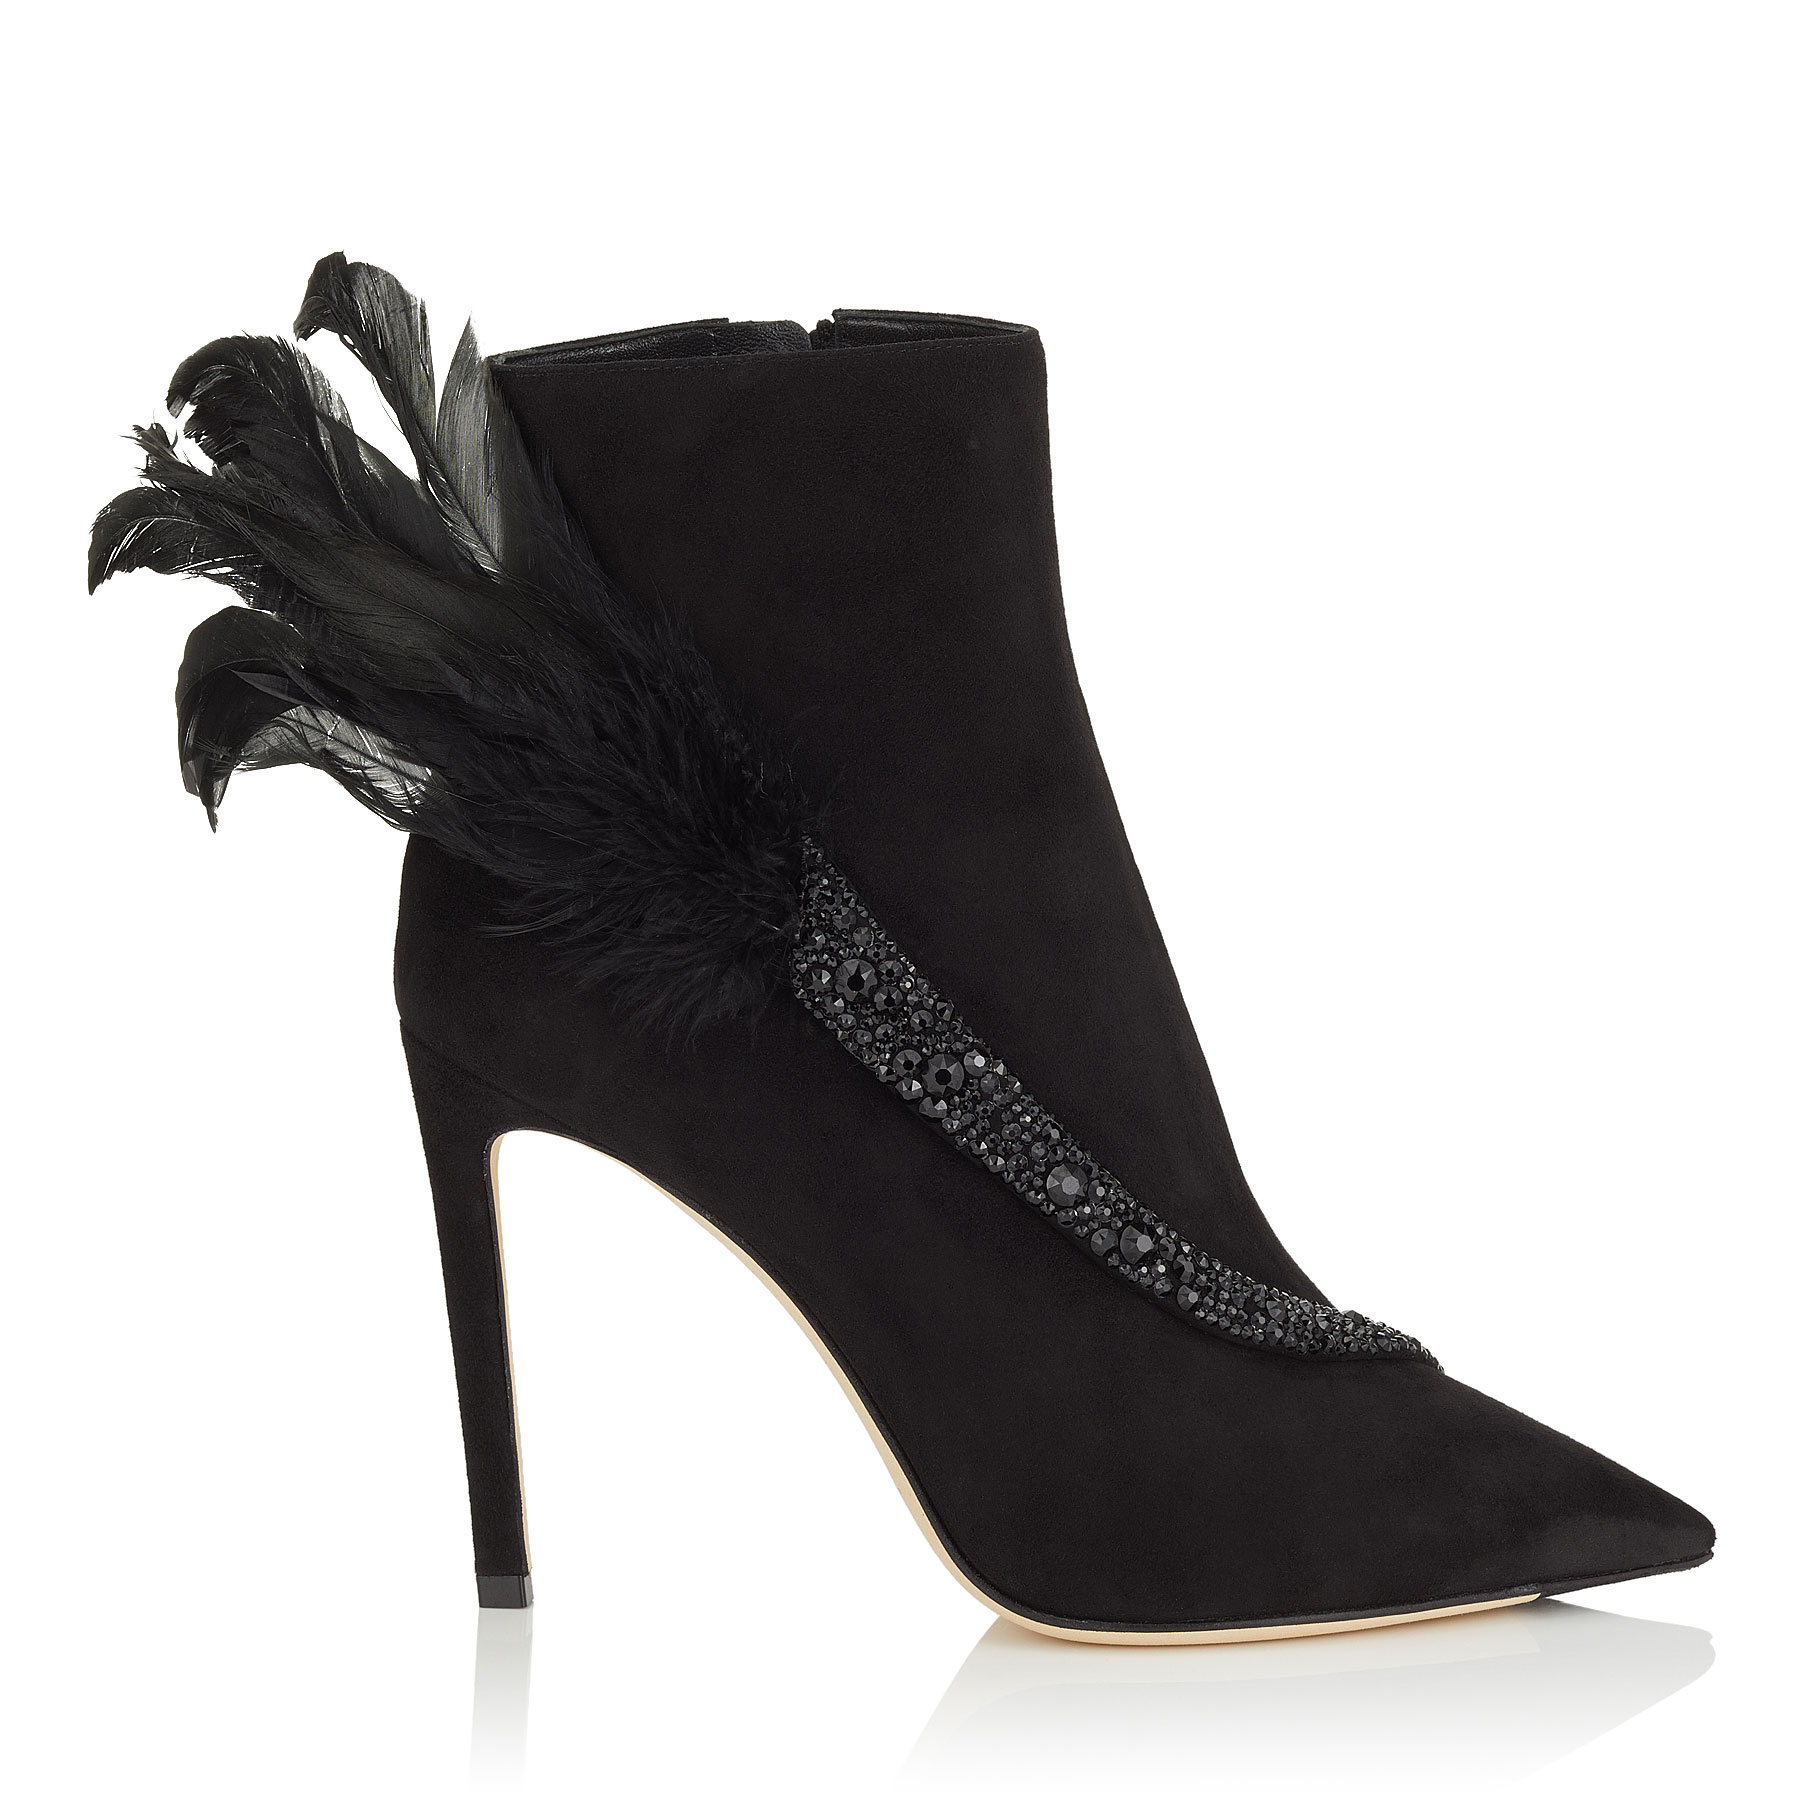 TANYA 100 Black Suede Booties with Crystals and Feathers by Jimmy Choo